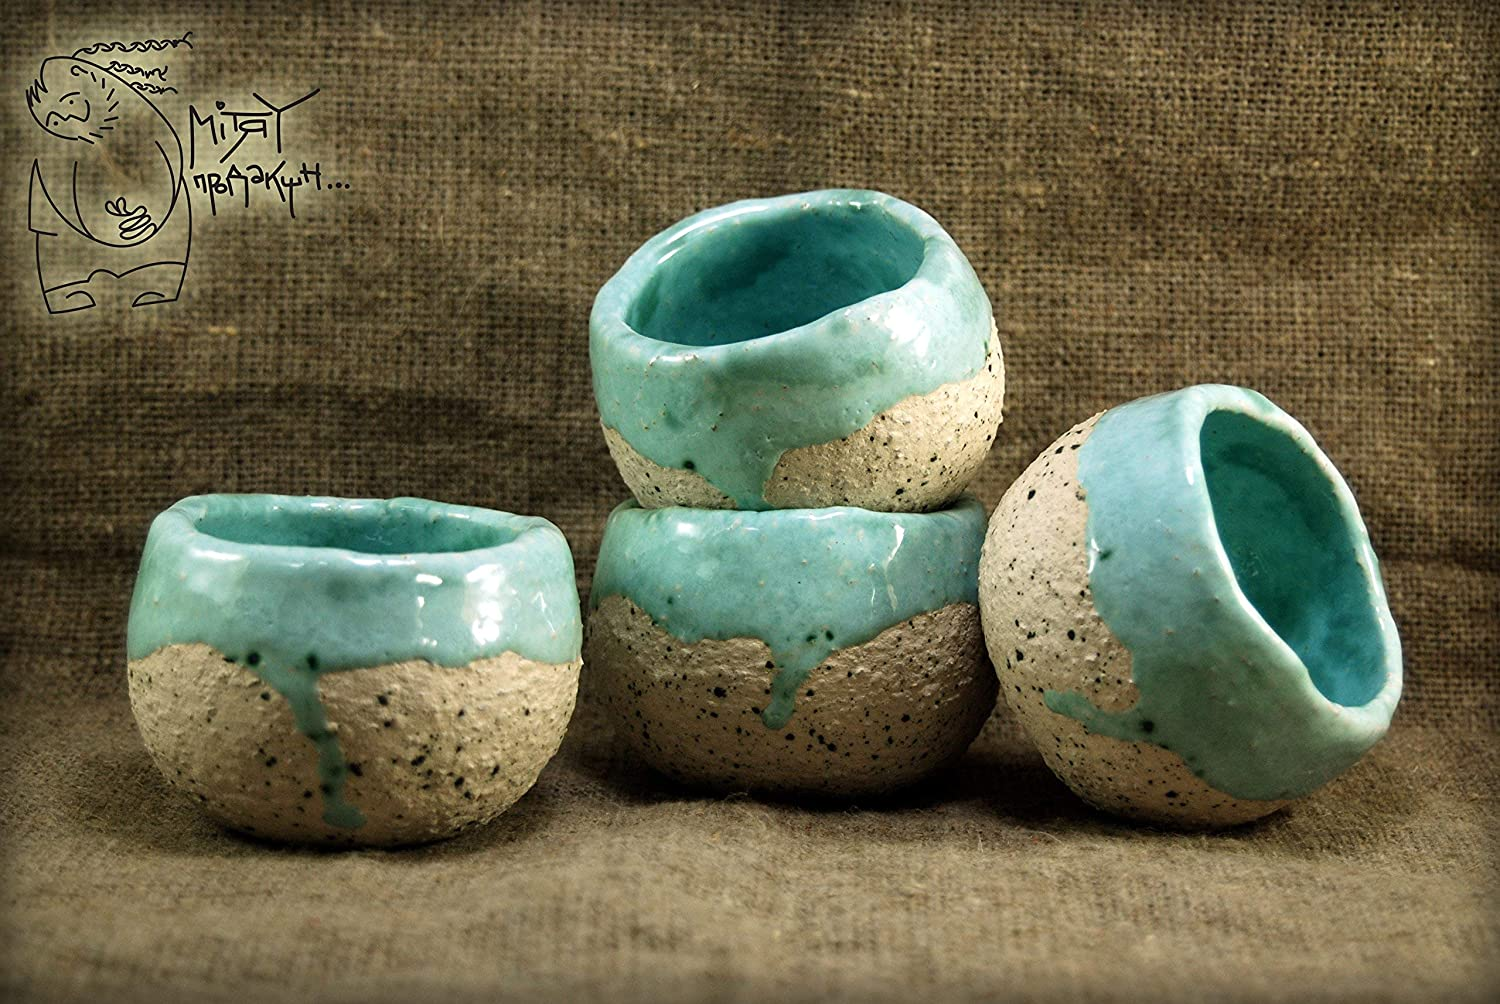 Small bowls for wine or tea 7 Oz Cereal ceramic pialat